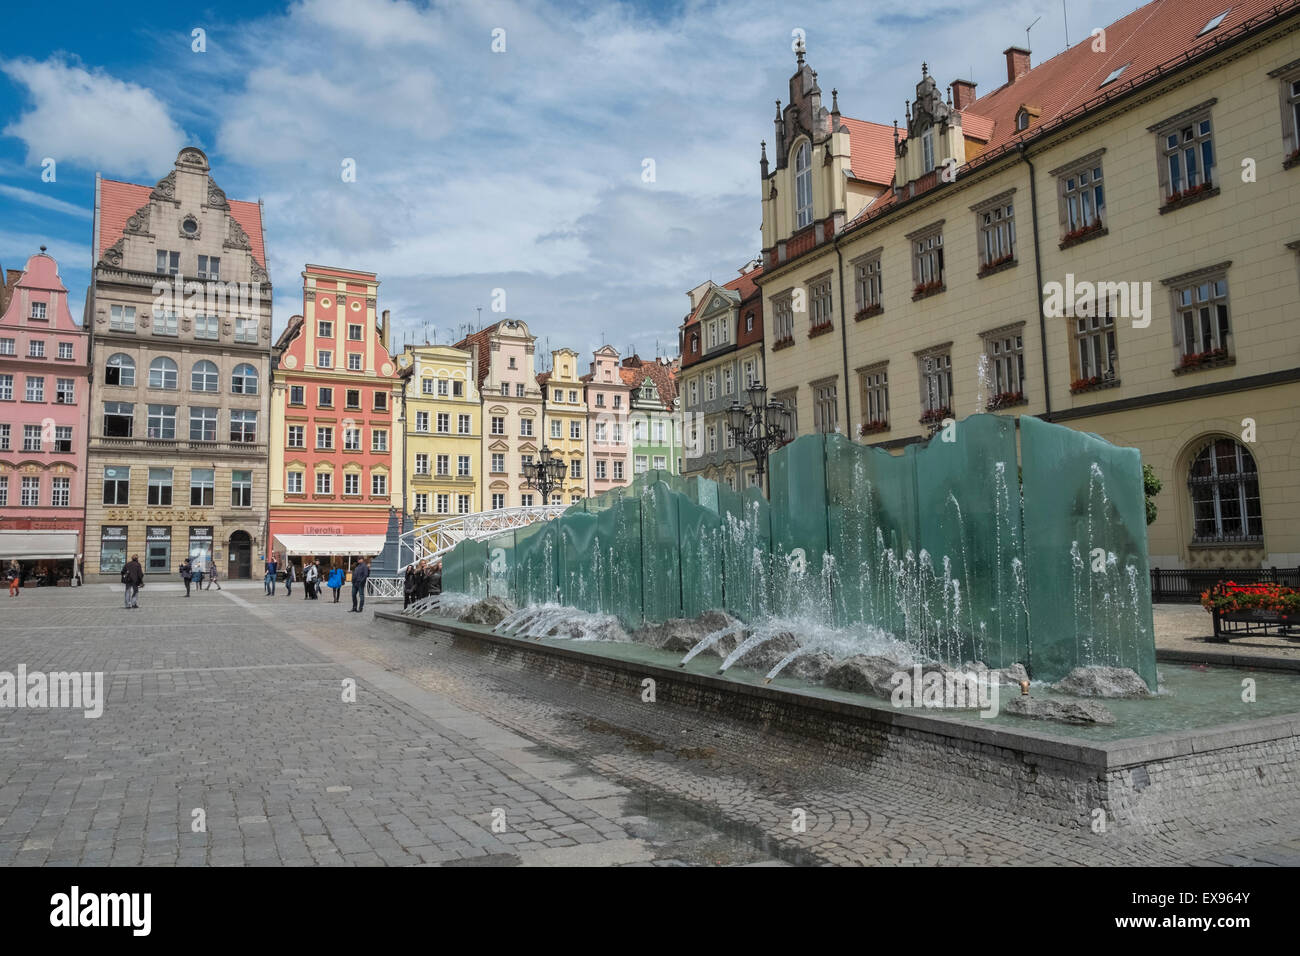 Modern Water Fountain Feature In The Market Square, Old Town, Wroclaw,  Poland